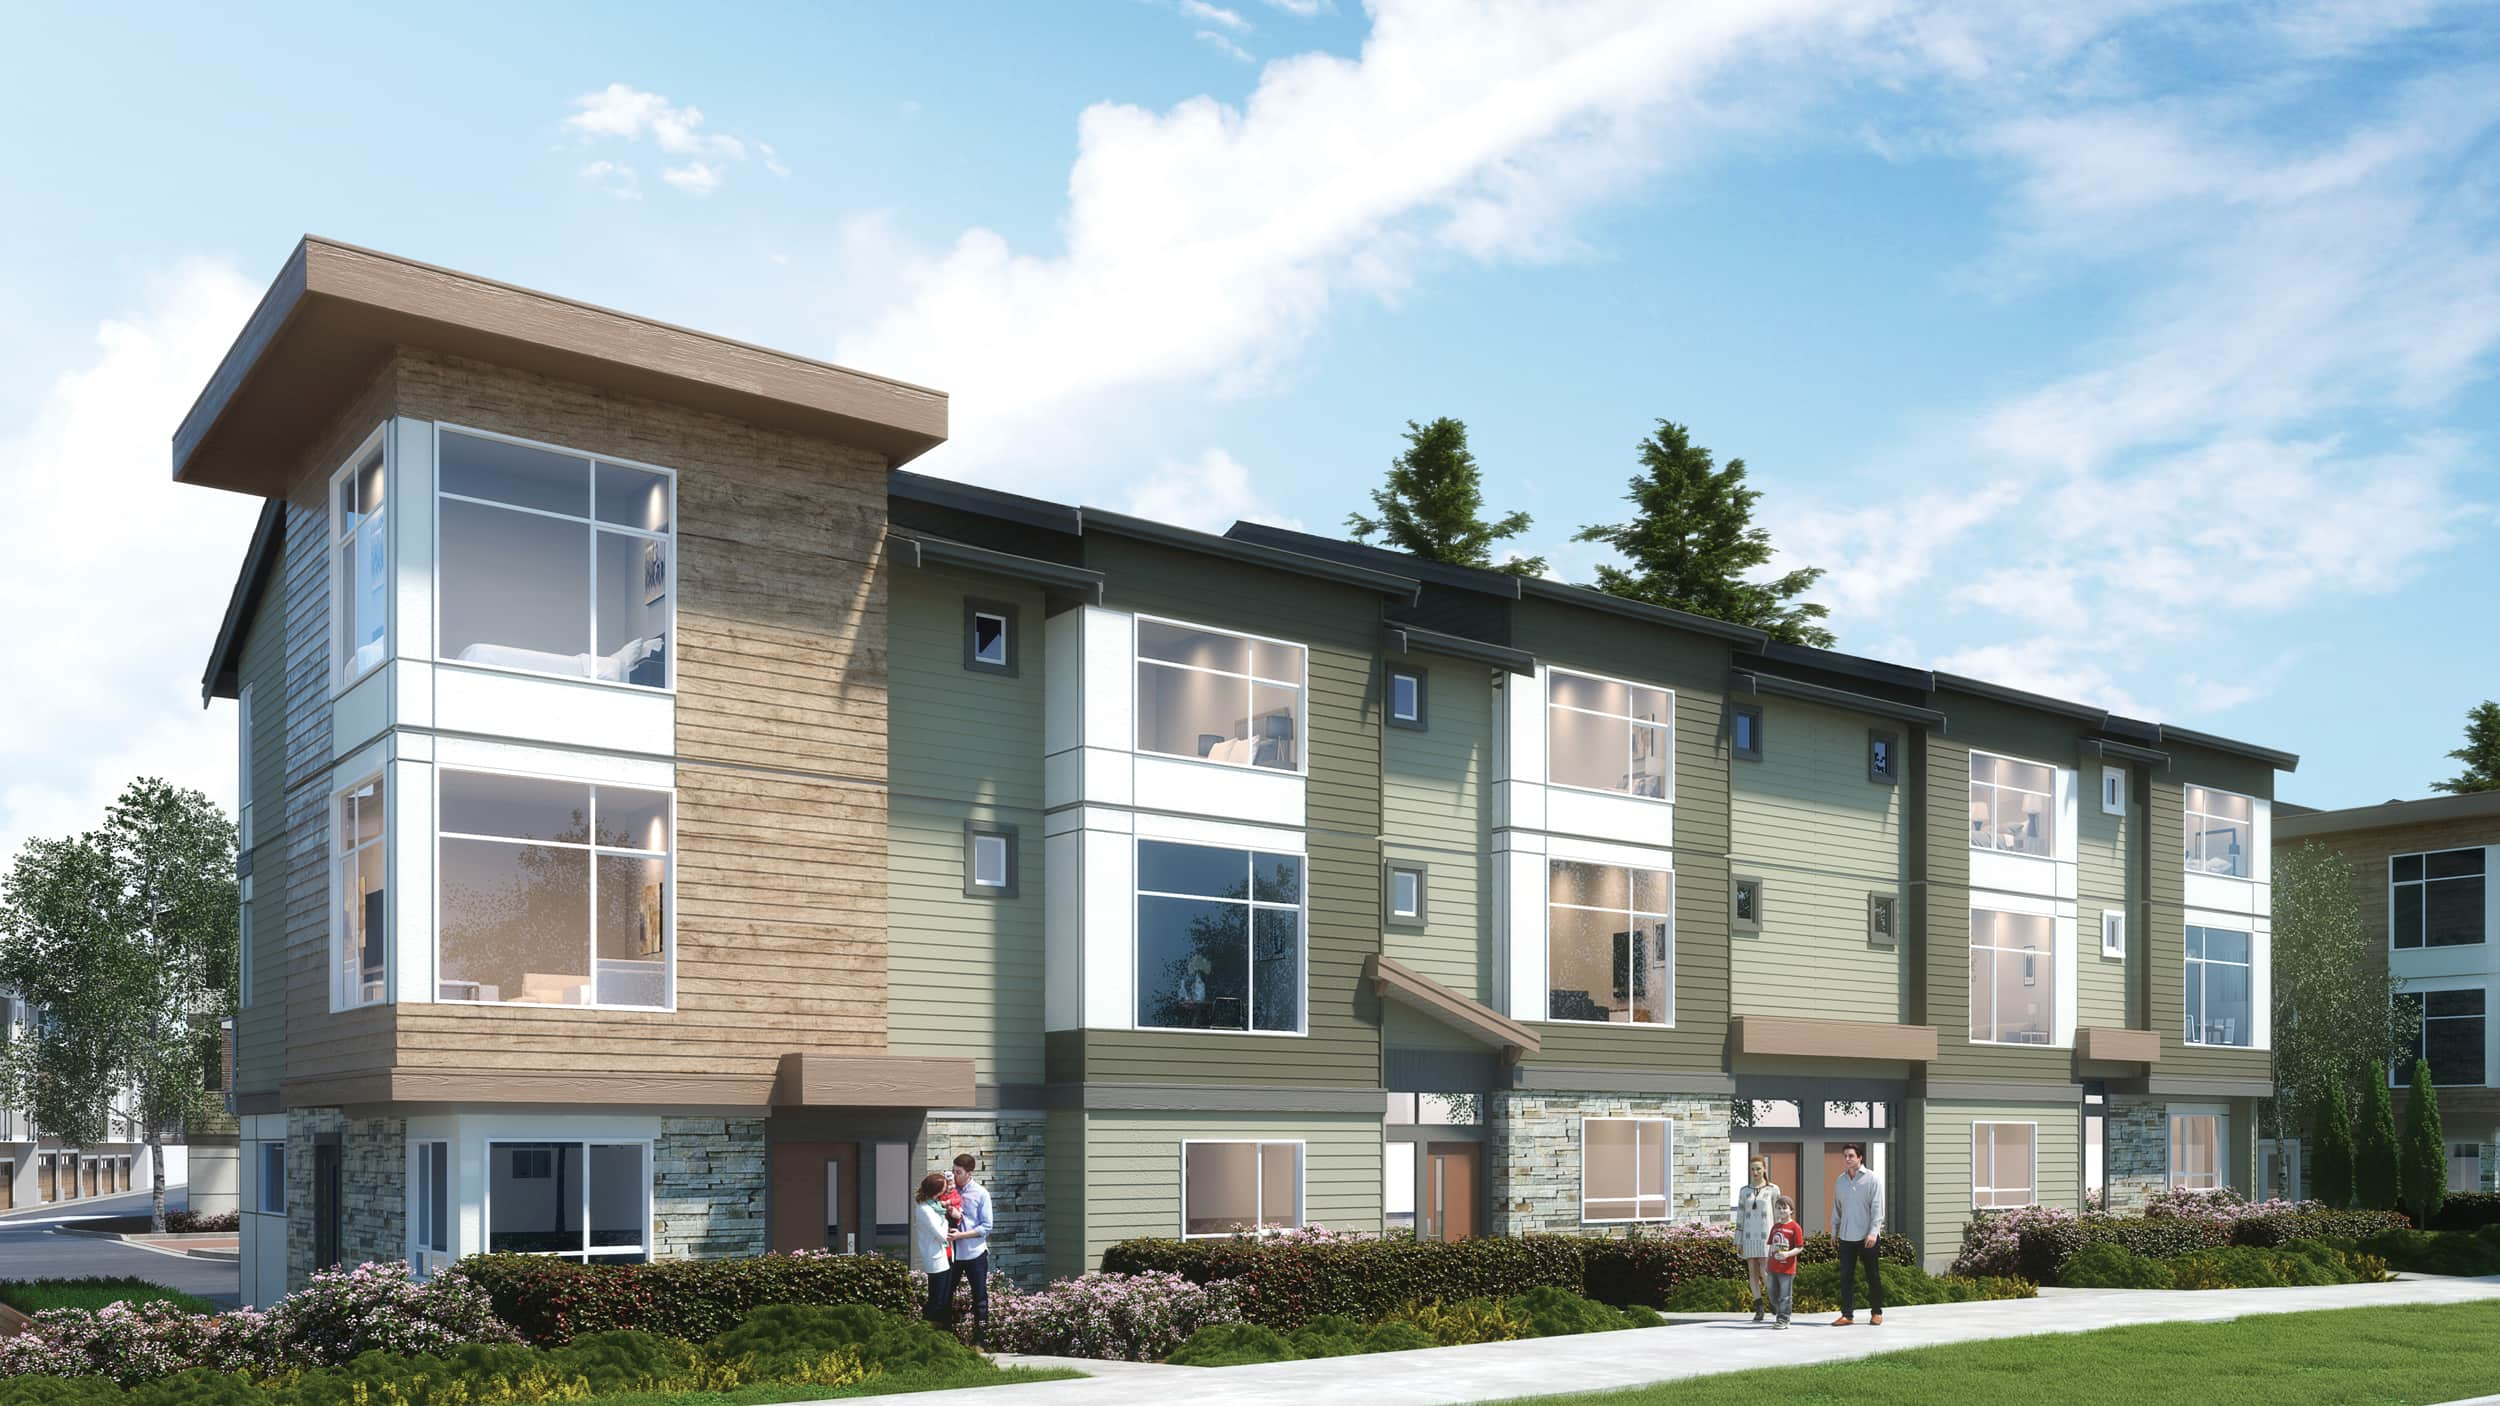 Keystone By Archwood – Plans, Prices, Availability